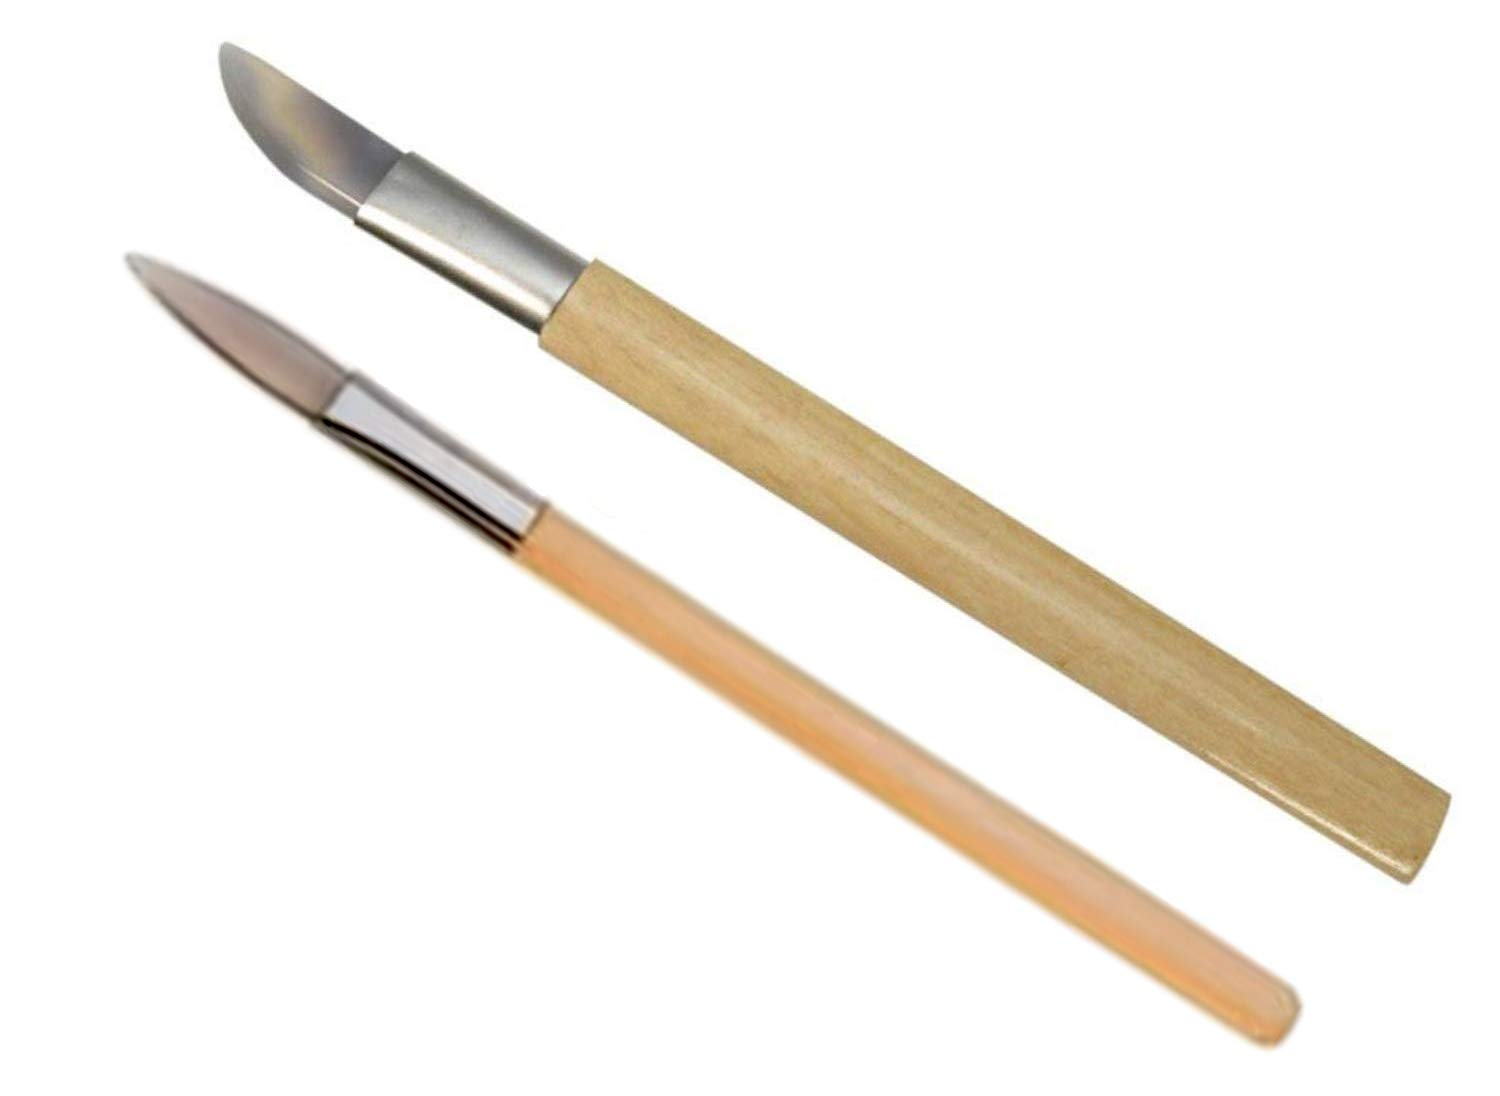 2 Agate Burnishers Bezel Gold Silver Leaf Bookbinders Tools, Jewelry Marker's Professional Set